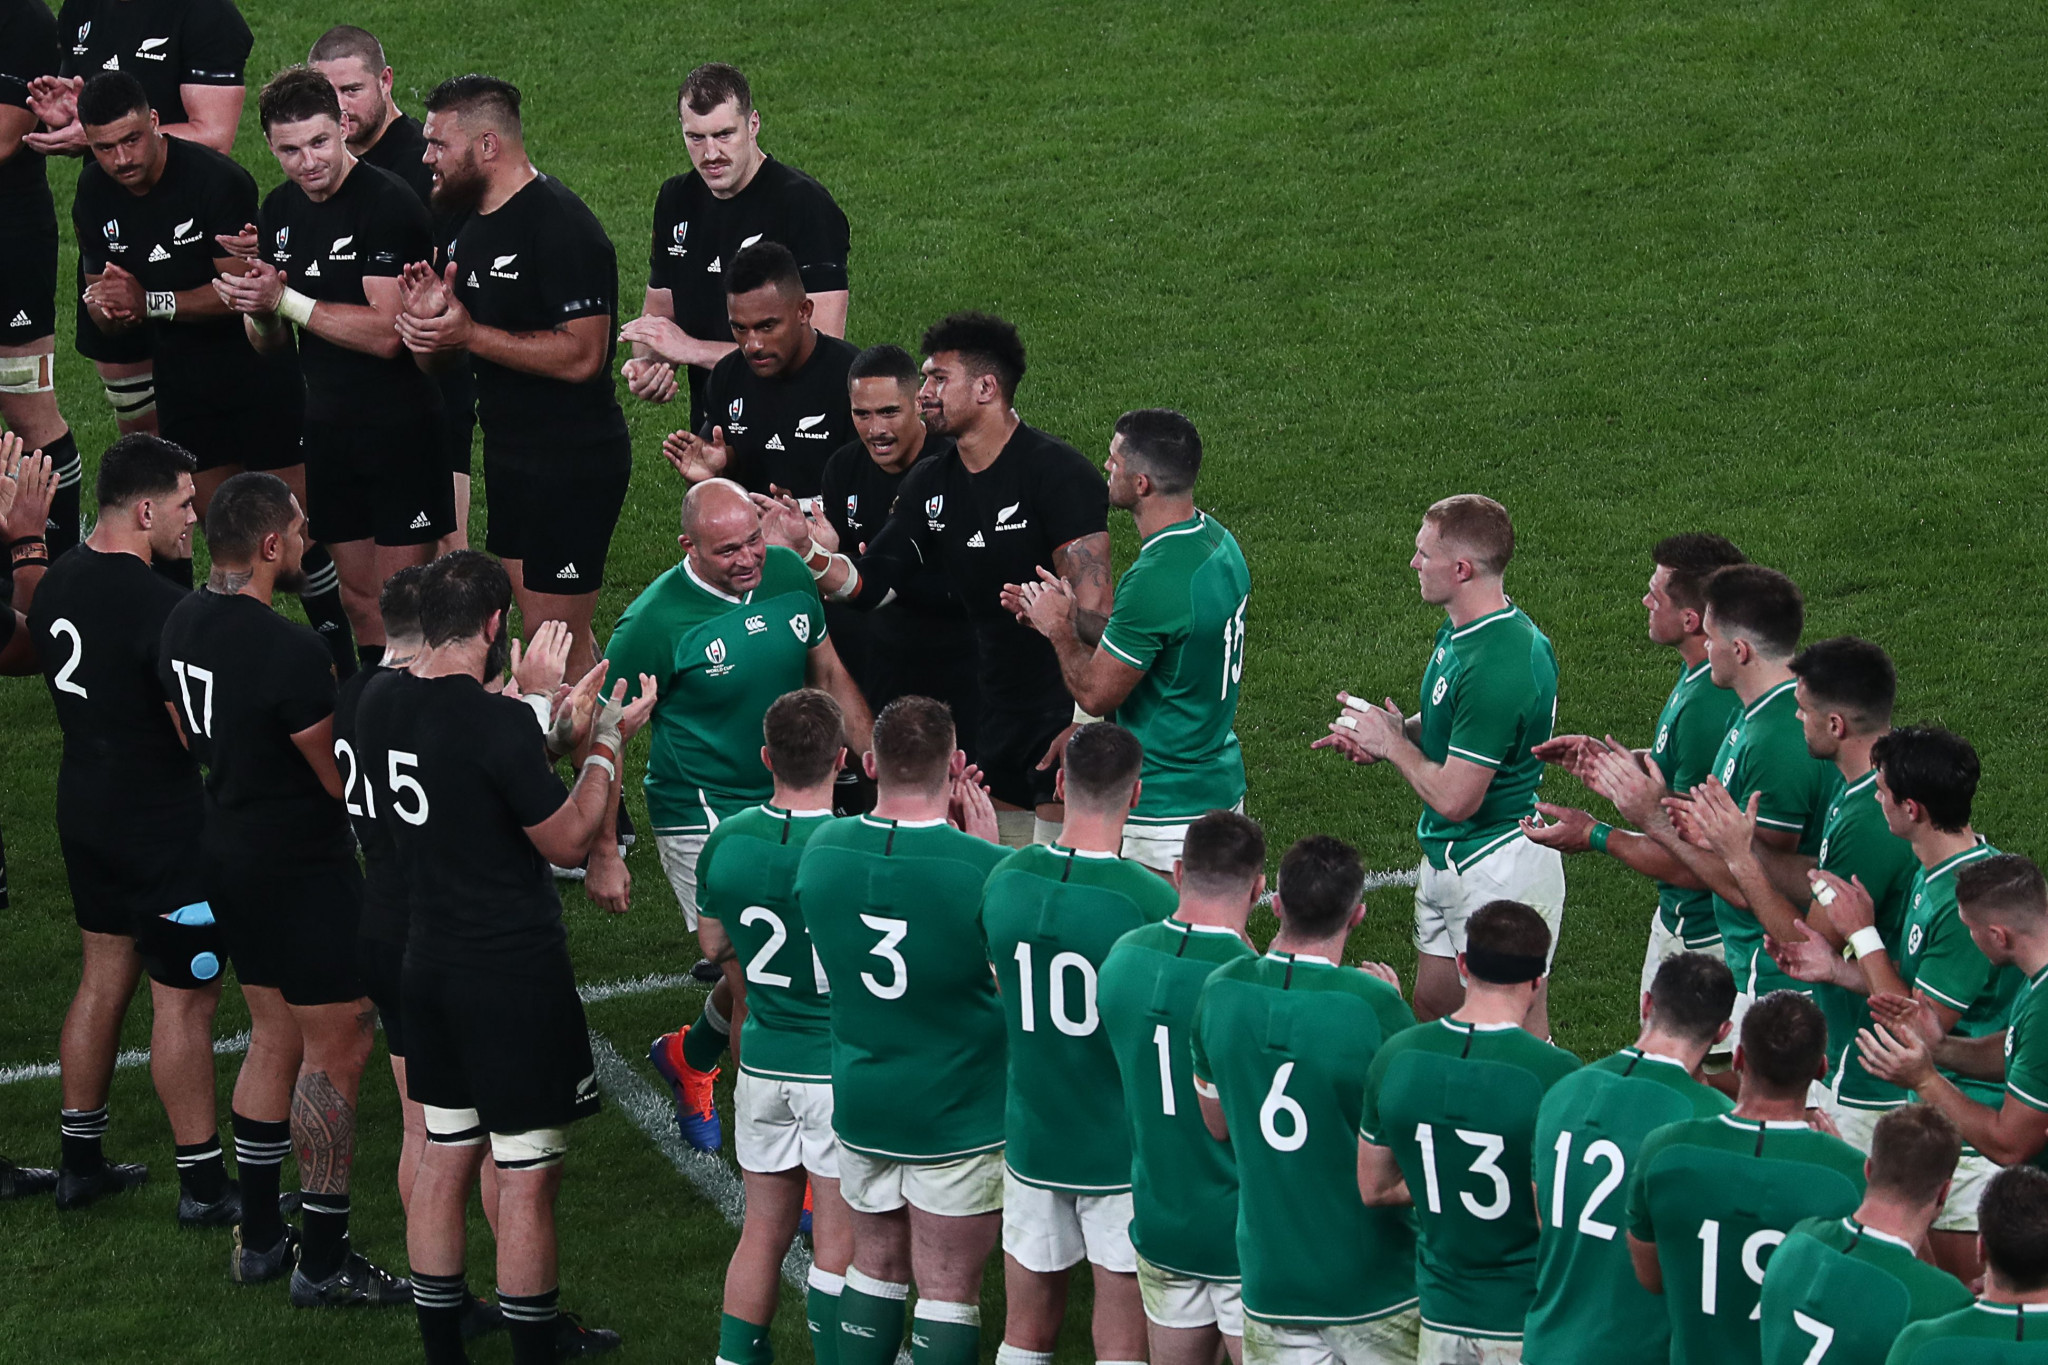 It was a bittersweet rugby farewell for Ireland captain Rory Best ©Getty Images